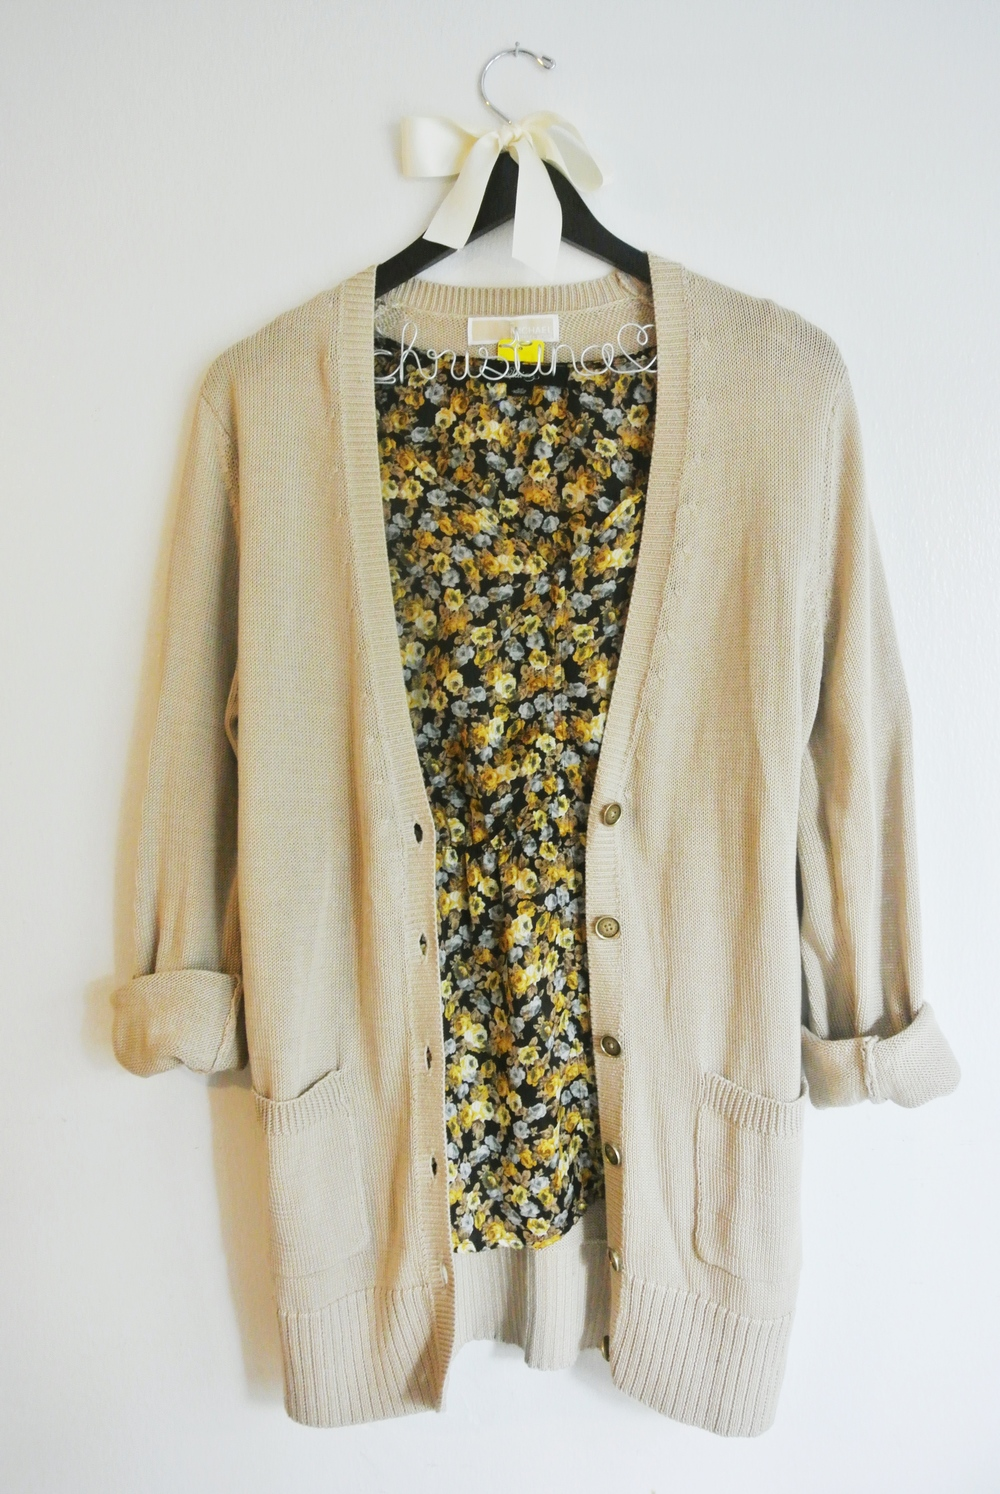 Michael Kors cardigan (styled with floral blouse from ClosetDash)